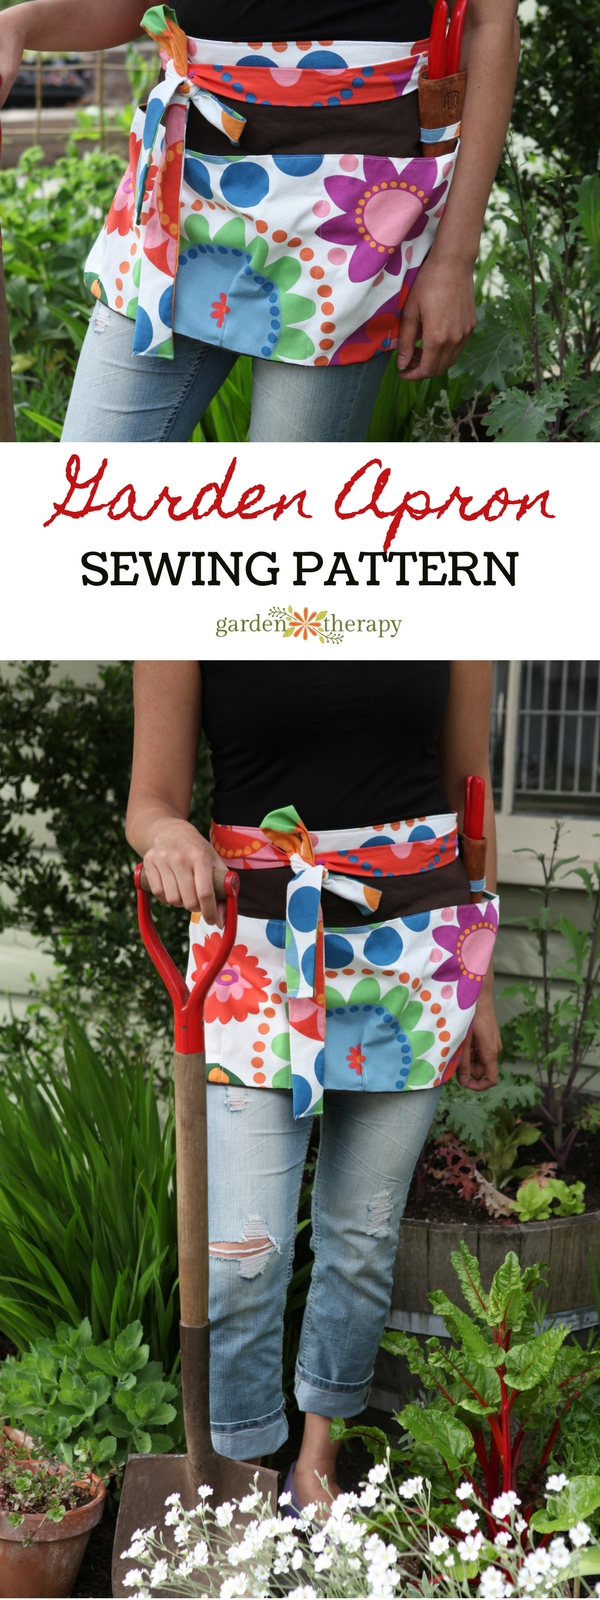 Make a fun and functional garden apron